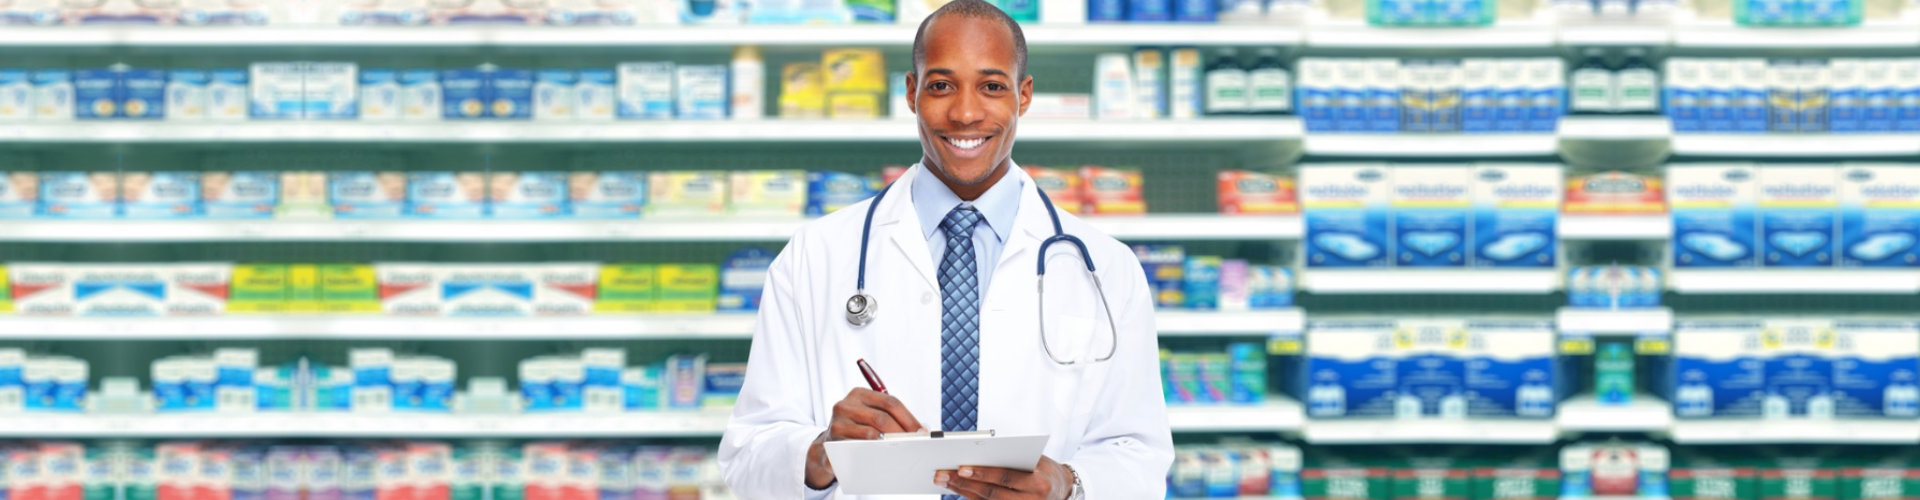 pharmacist on the counter